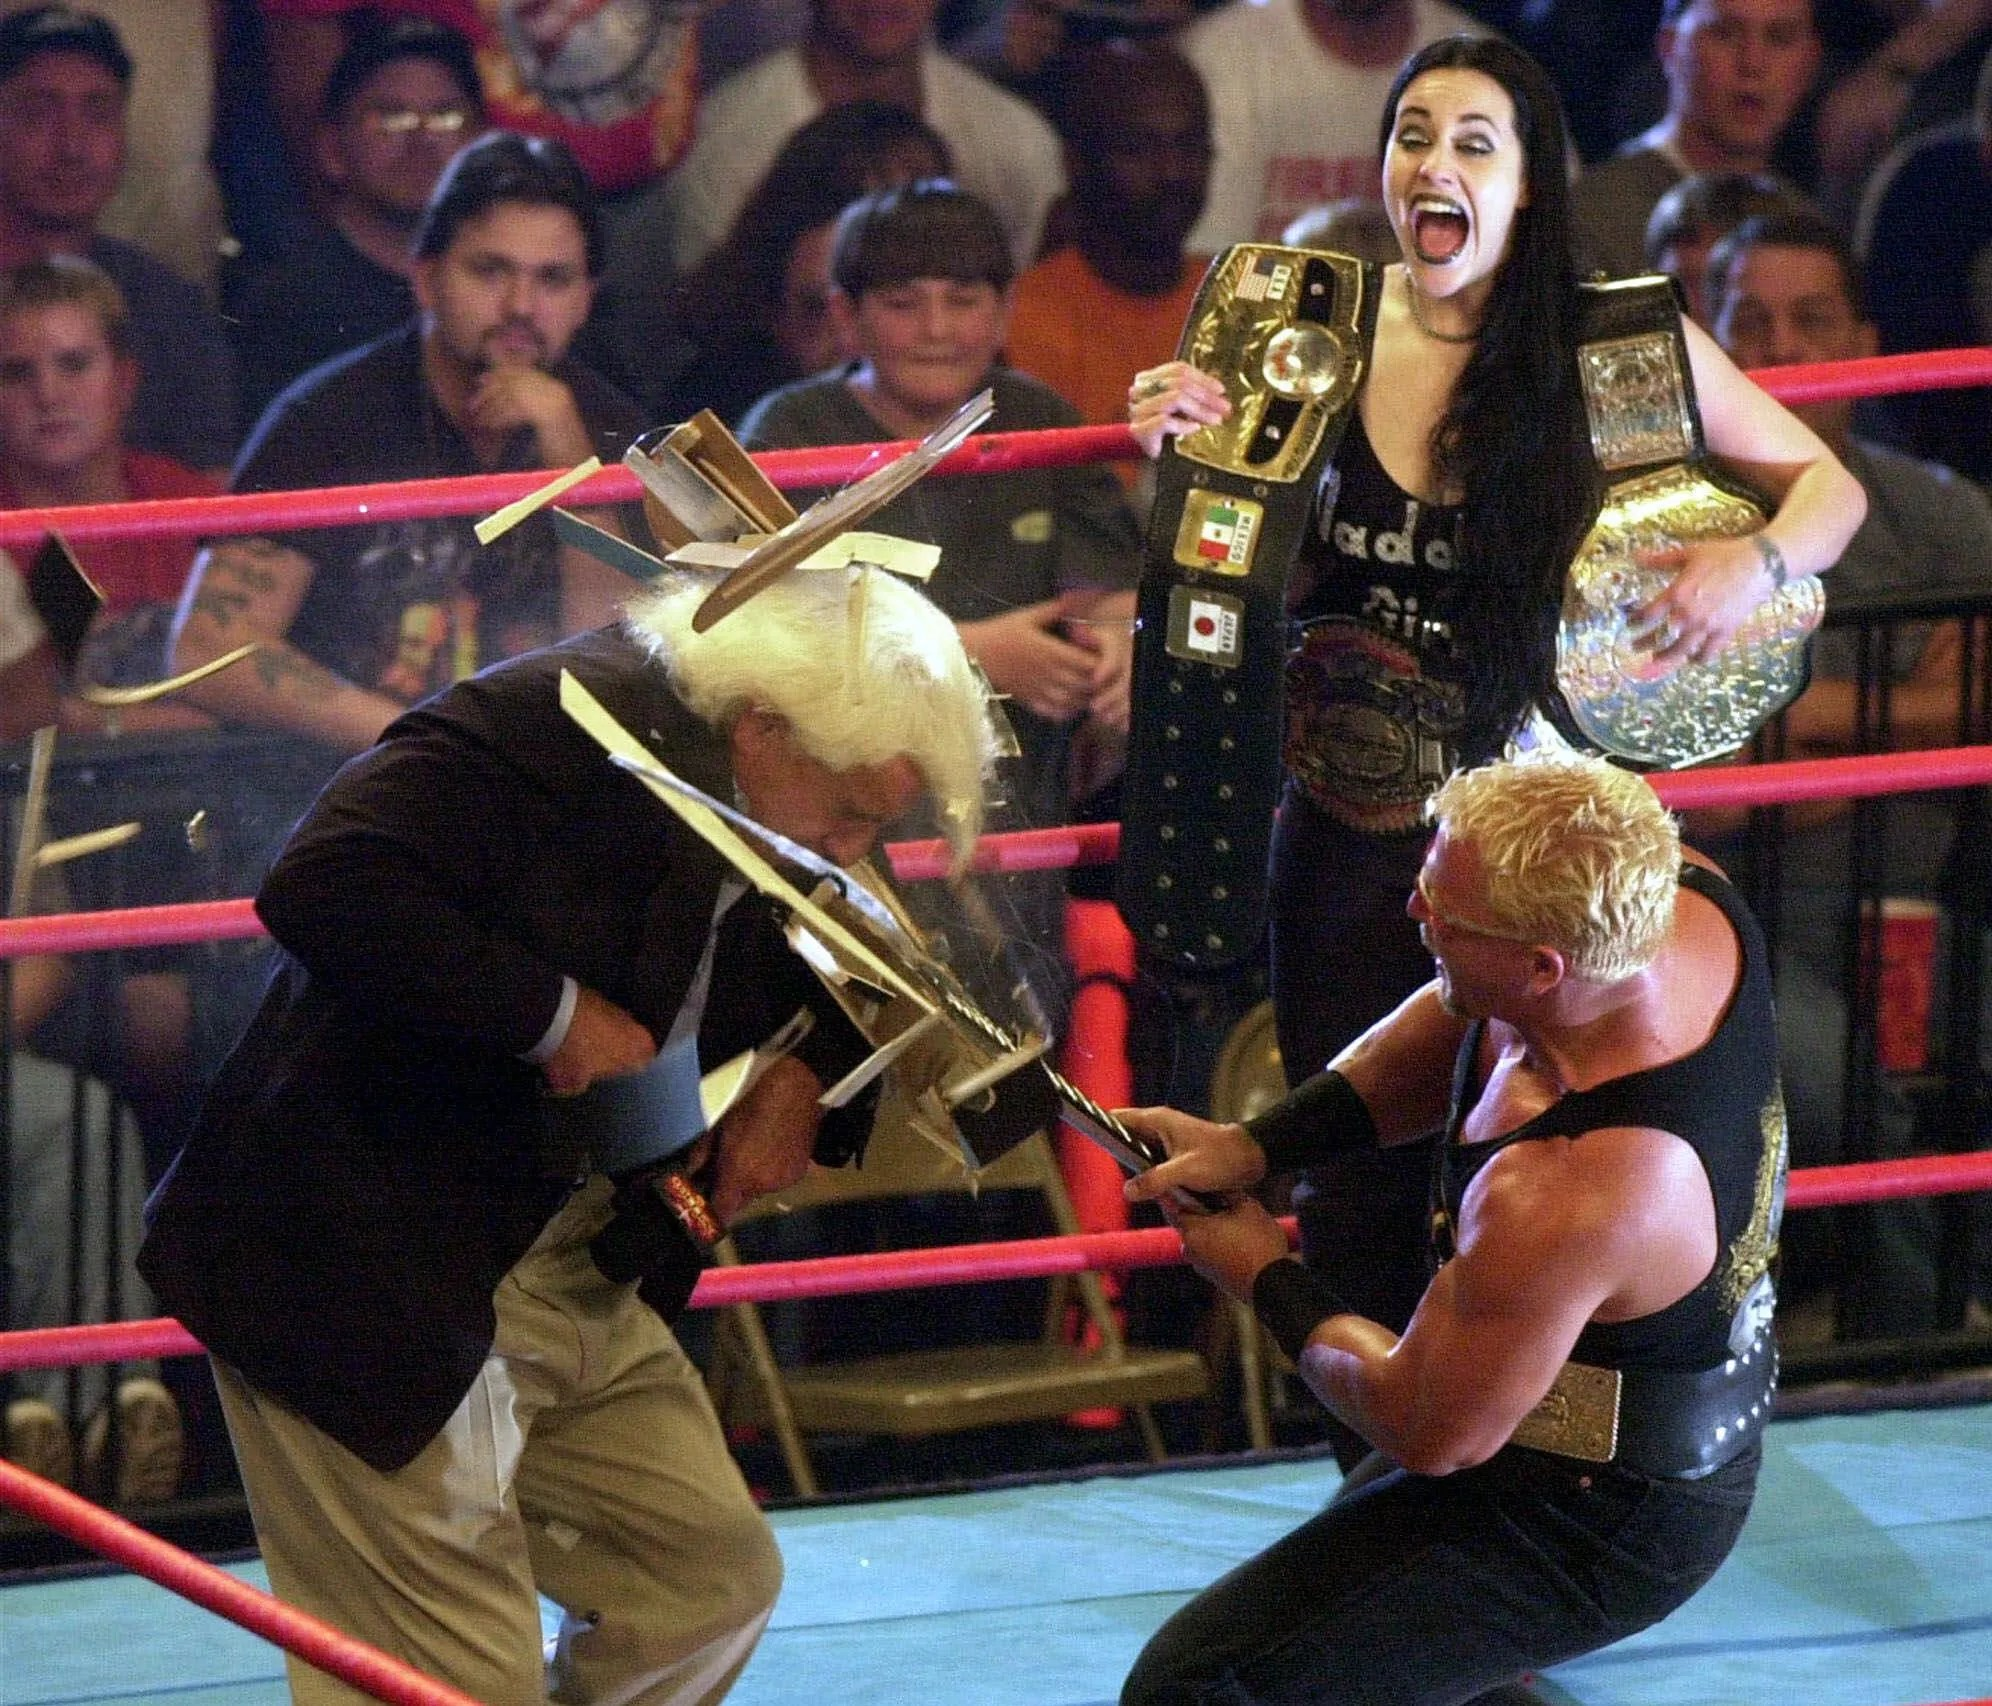 Daffney Unger looks on as Jeff Jarrett, right, smashes a guitar over the head of Ric Flair during WCW's Monday Nitro on May 15, 2000.